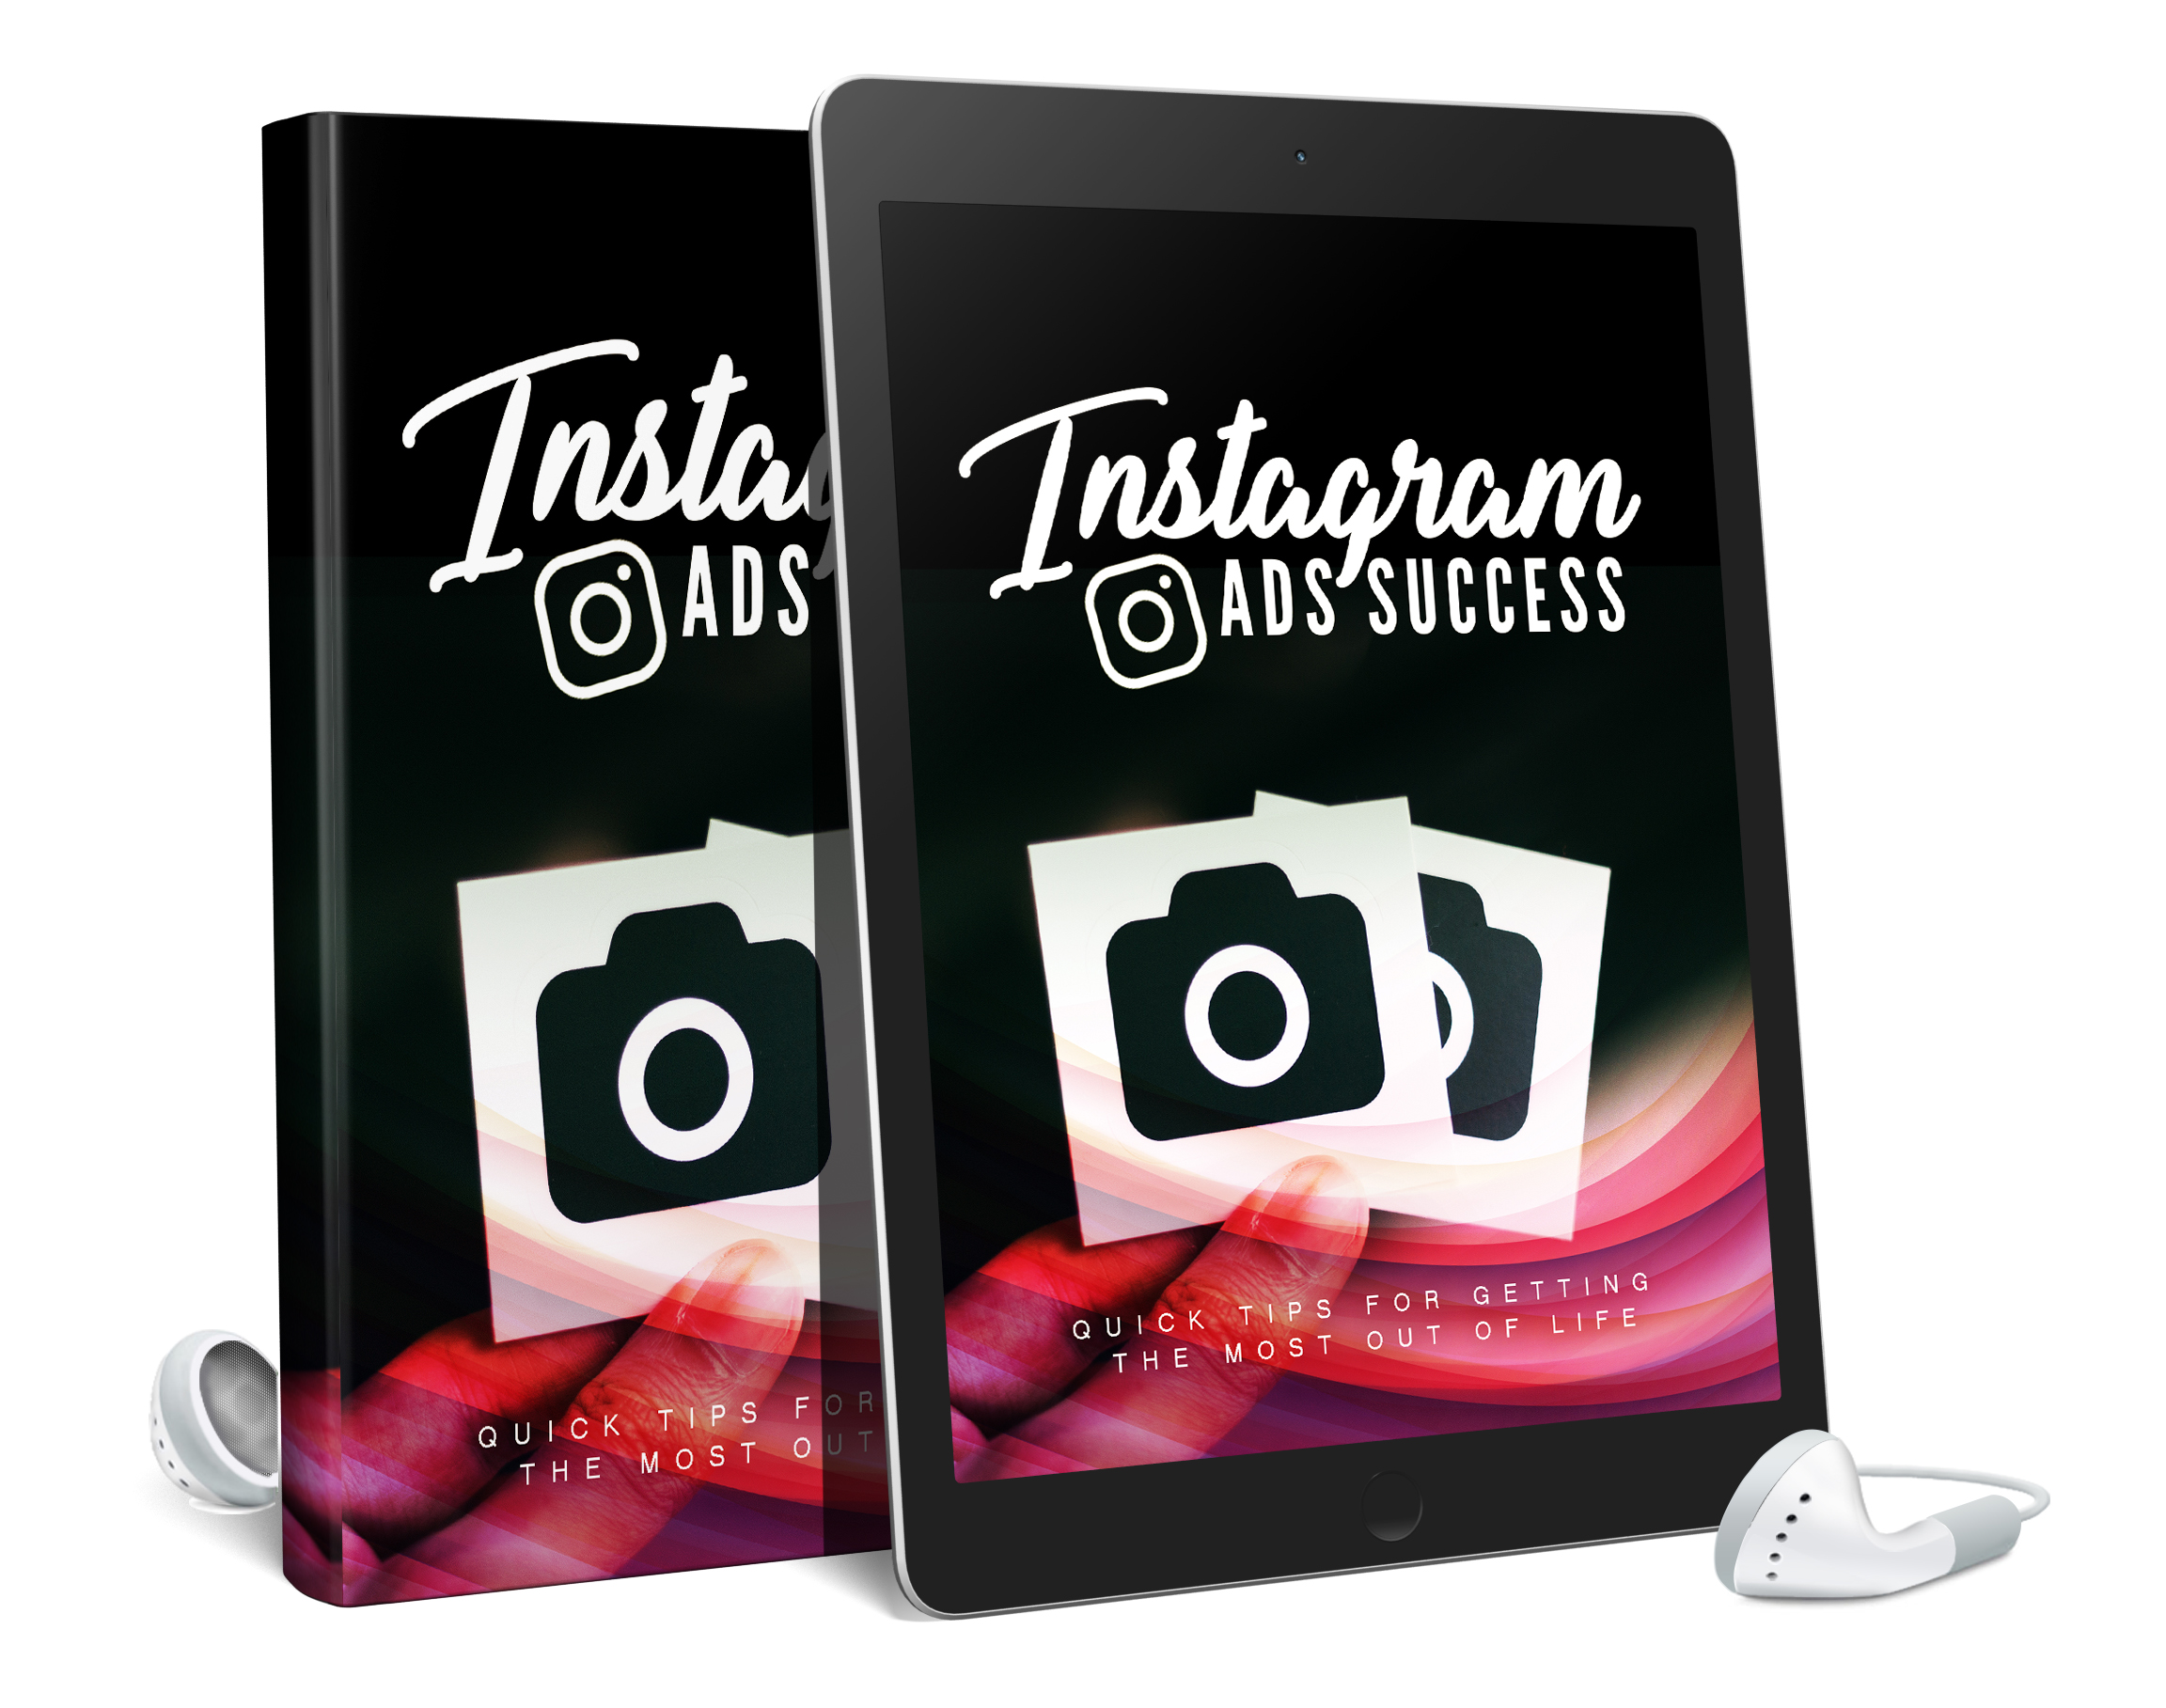 Instagram Ads Success AudioBook and Ebook